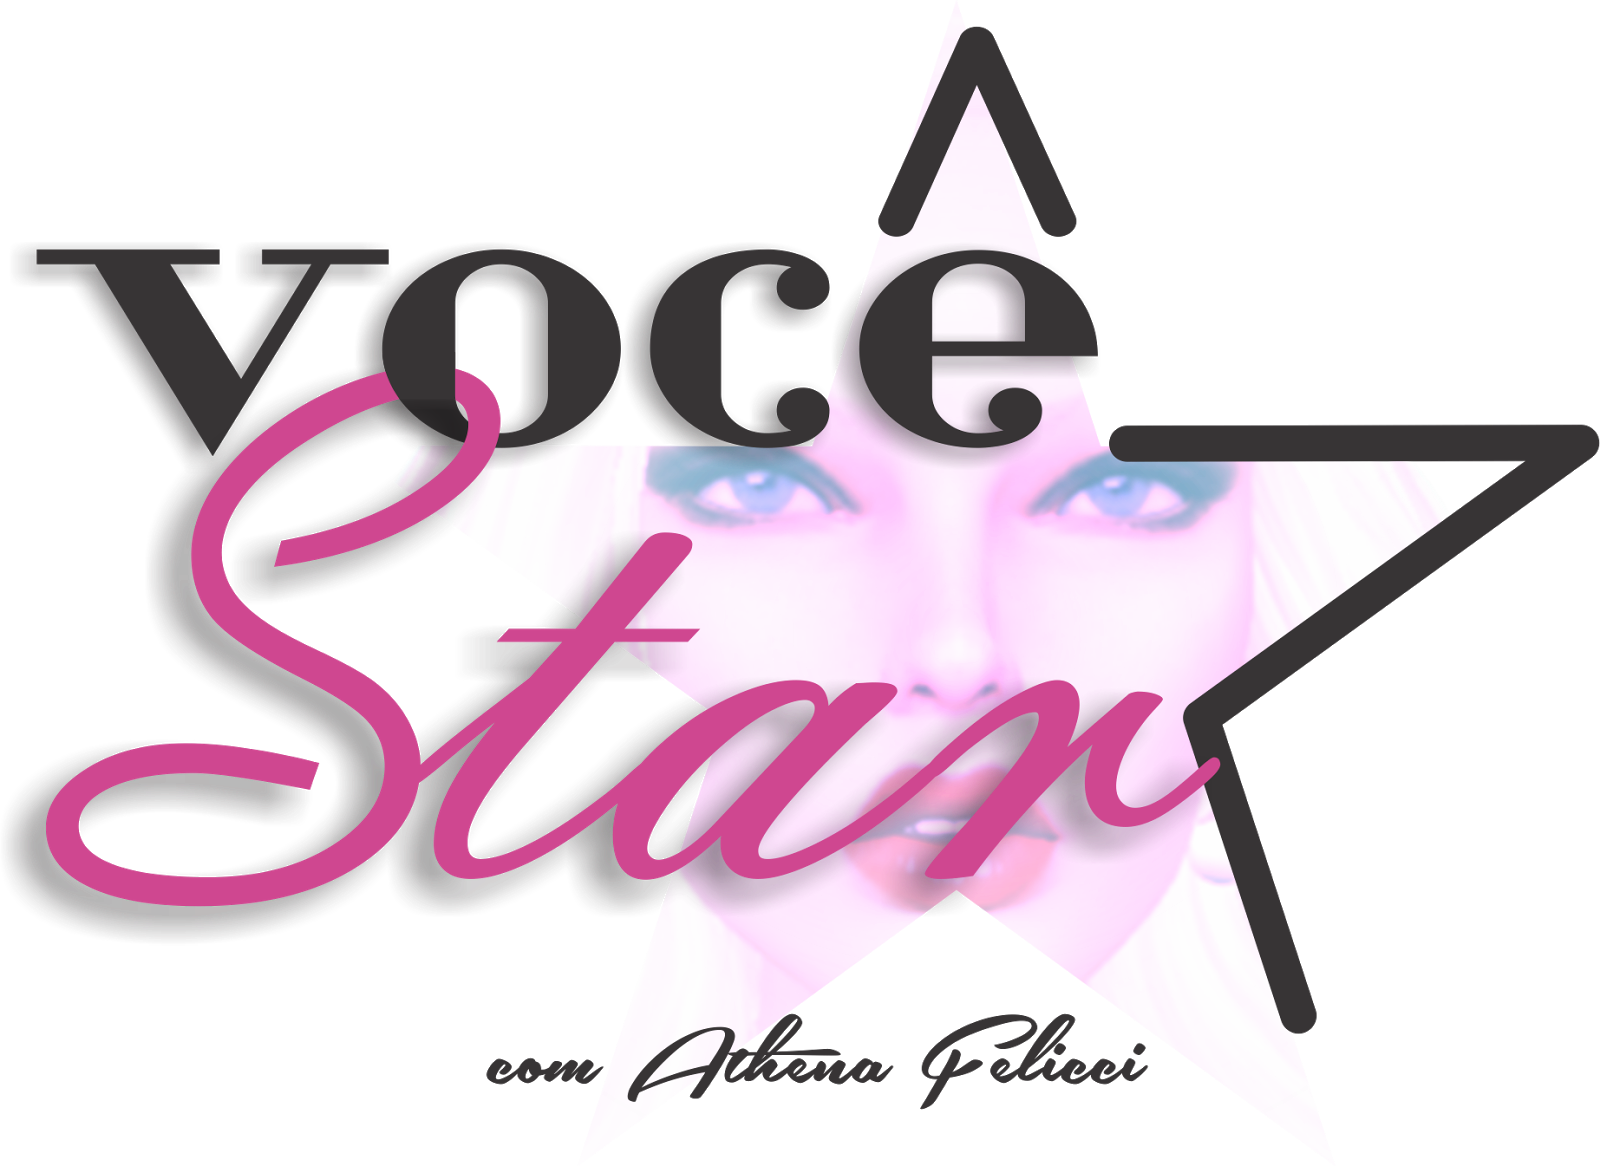 Voce star talkshow